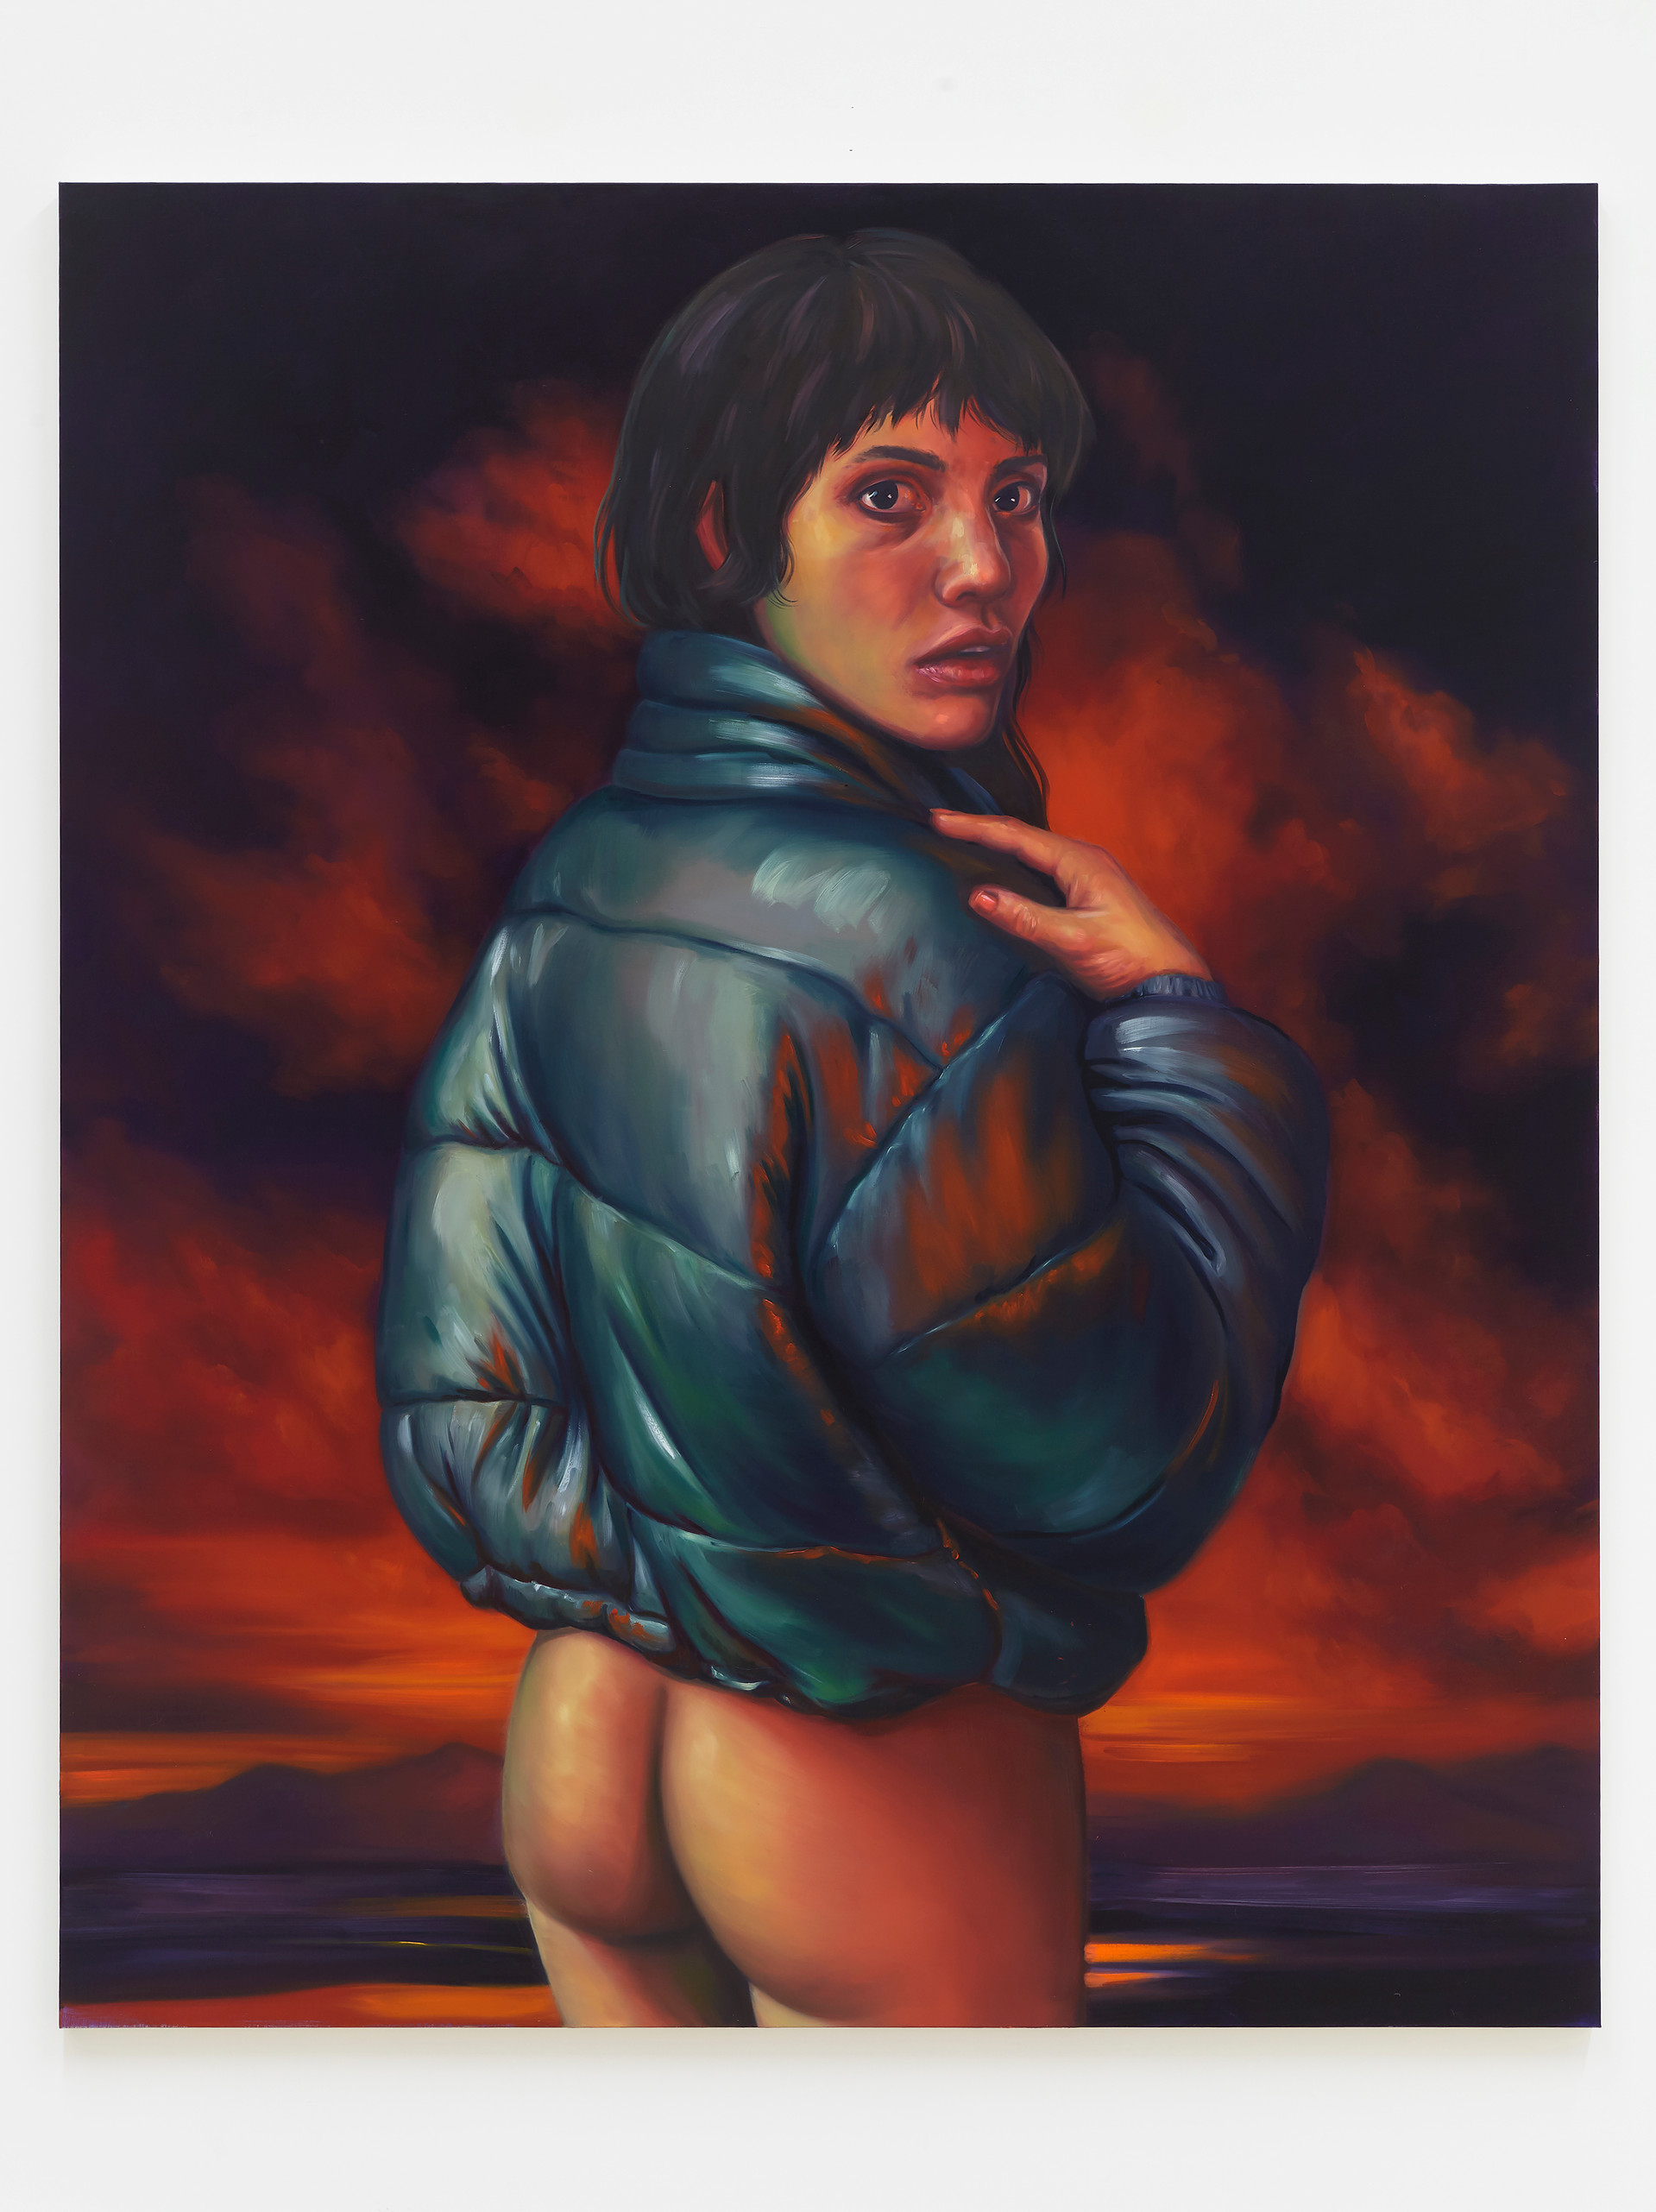 Chloe Wise  A chance not to relax, 2019  Oil on linen  72 x 60 inches